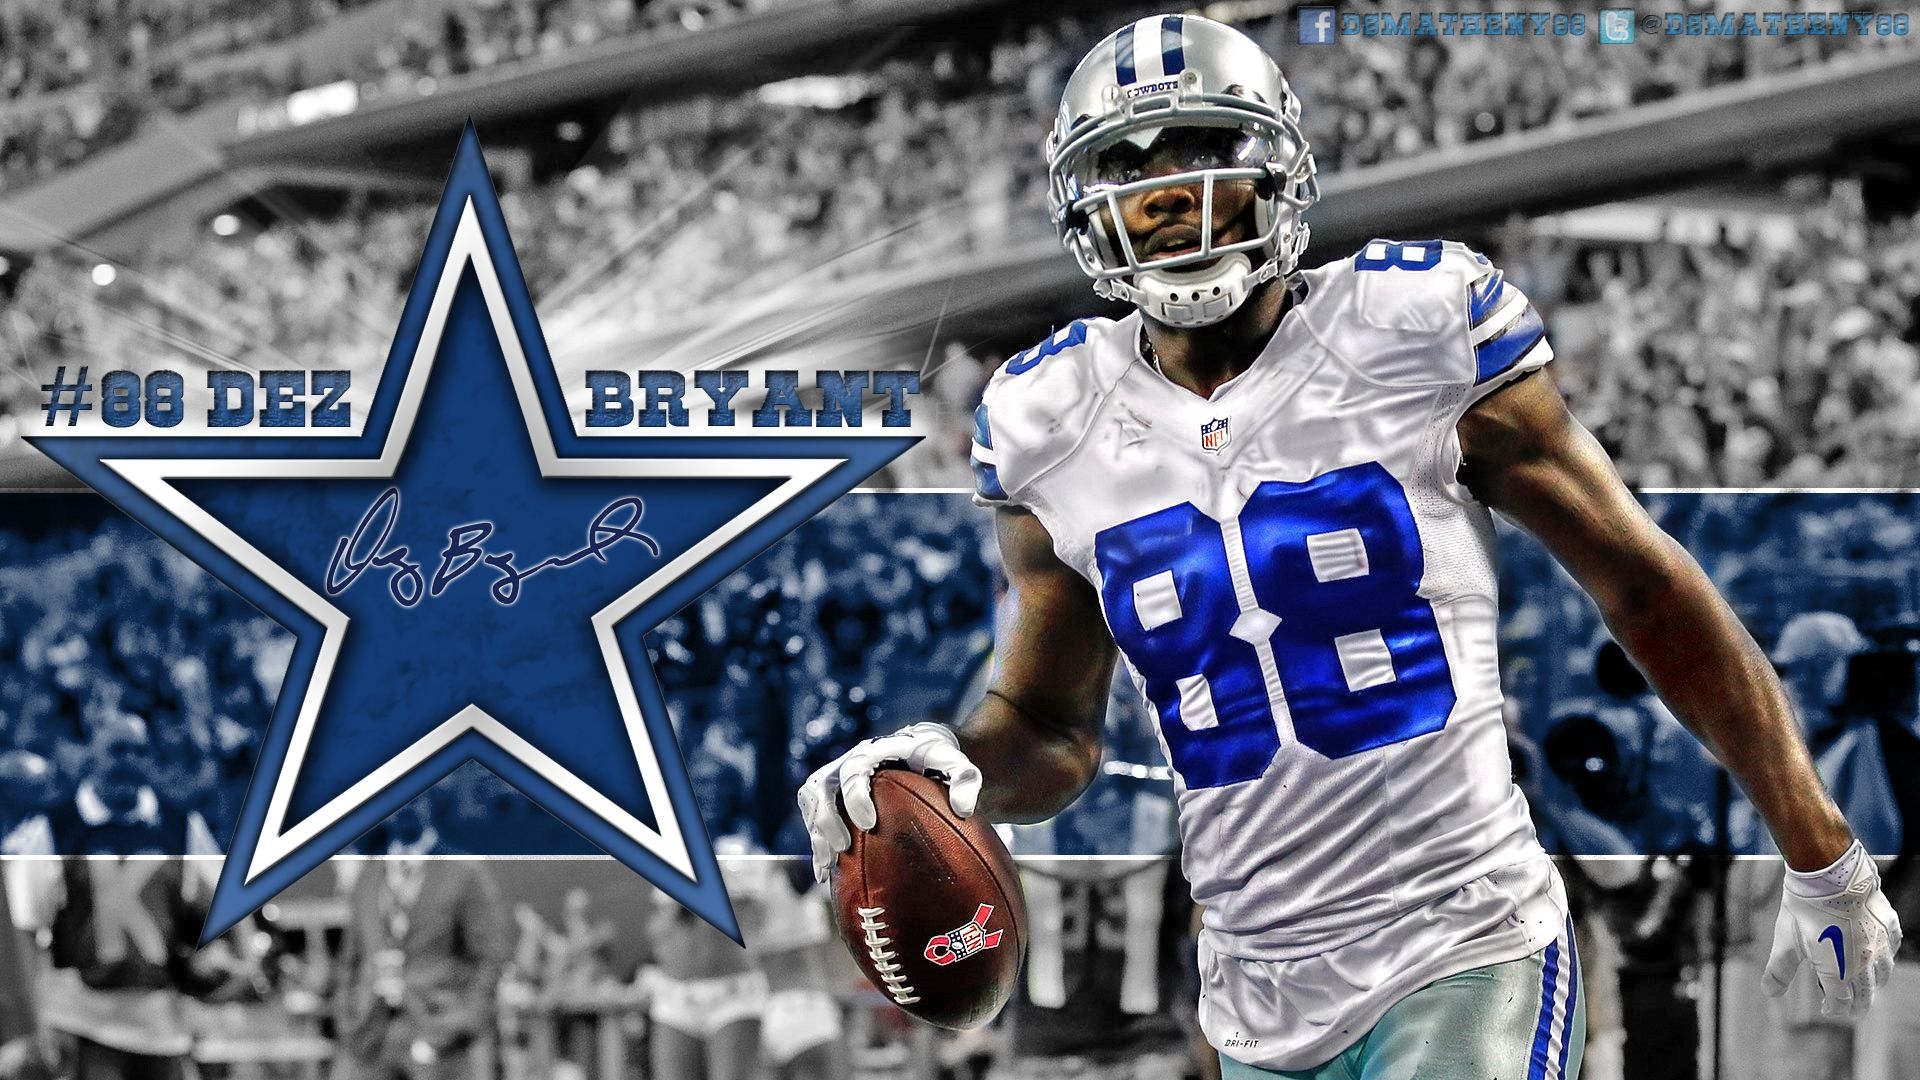 Great Wallpaper Football Cowboys - cc8035197489534f03c5576dabf983a8  Photograph_684232 .jpg